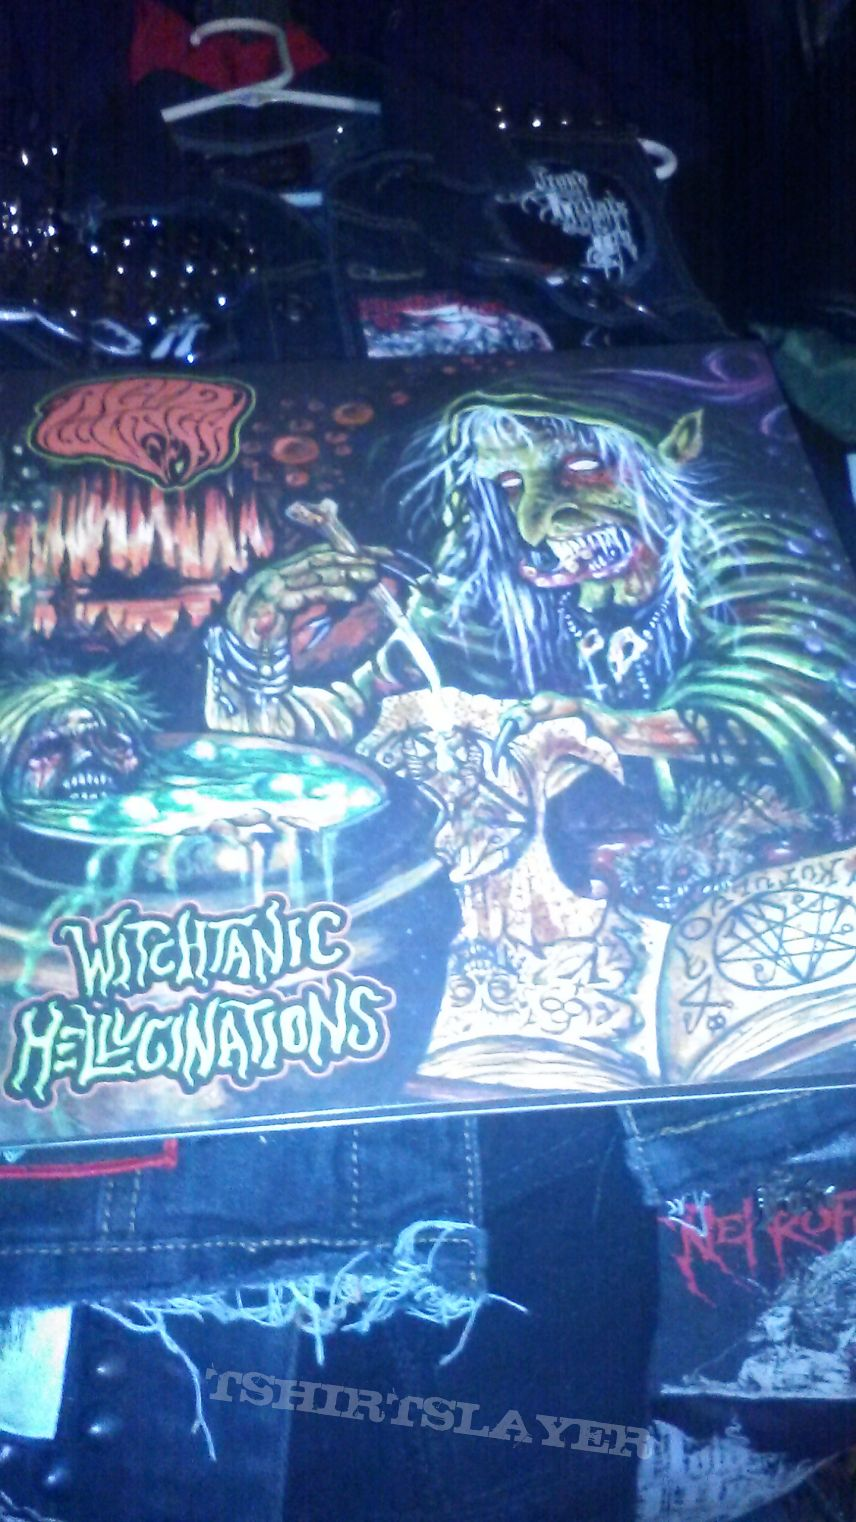 Witchtanic Hellucinations lp